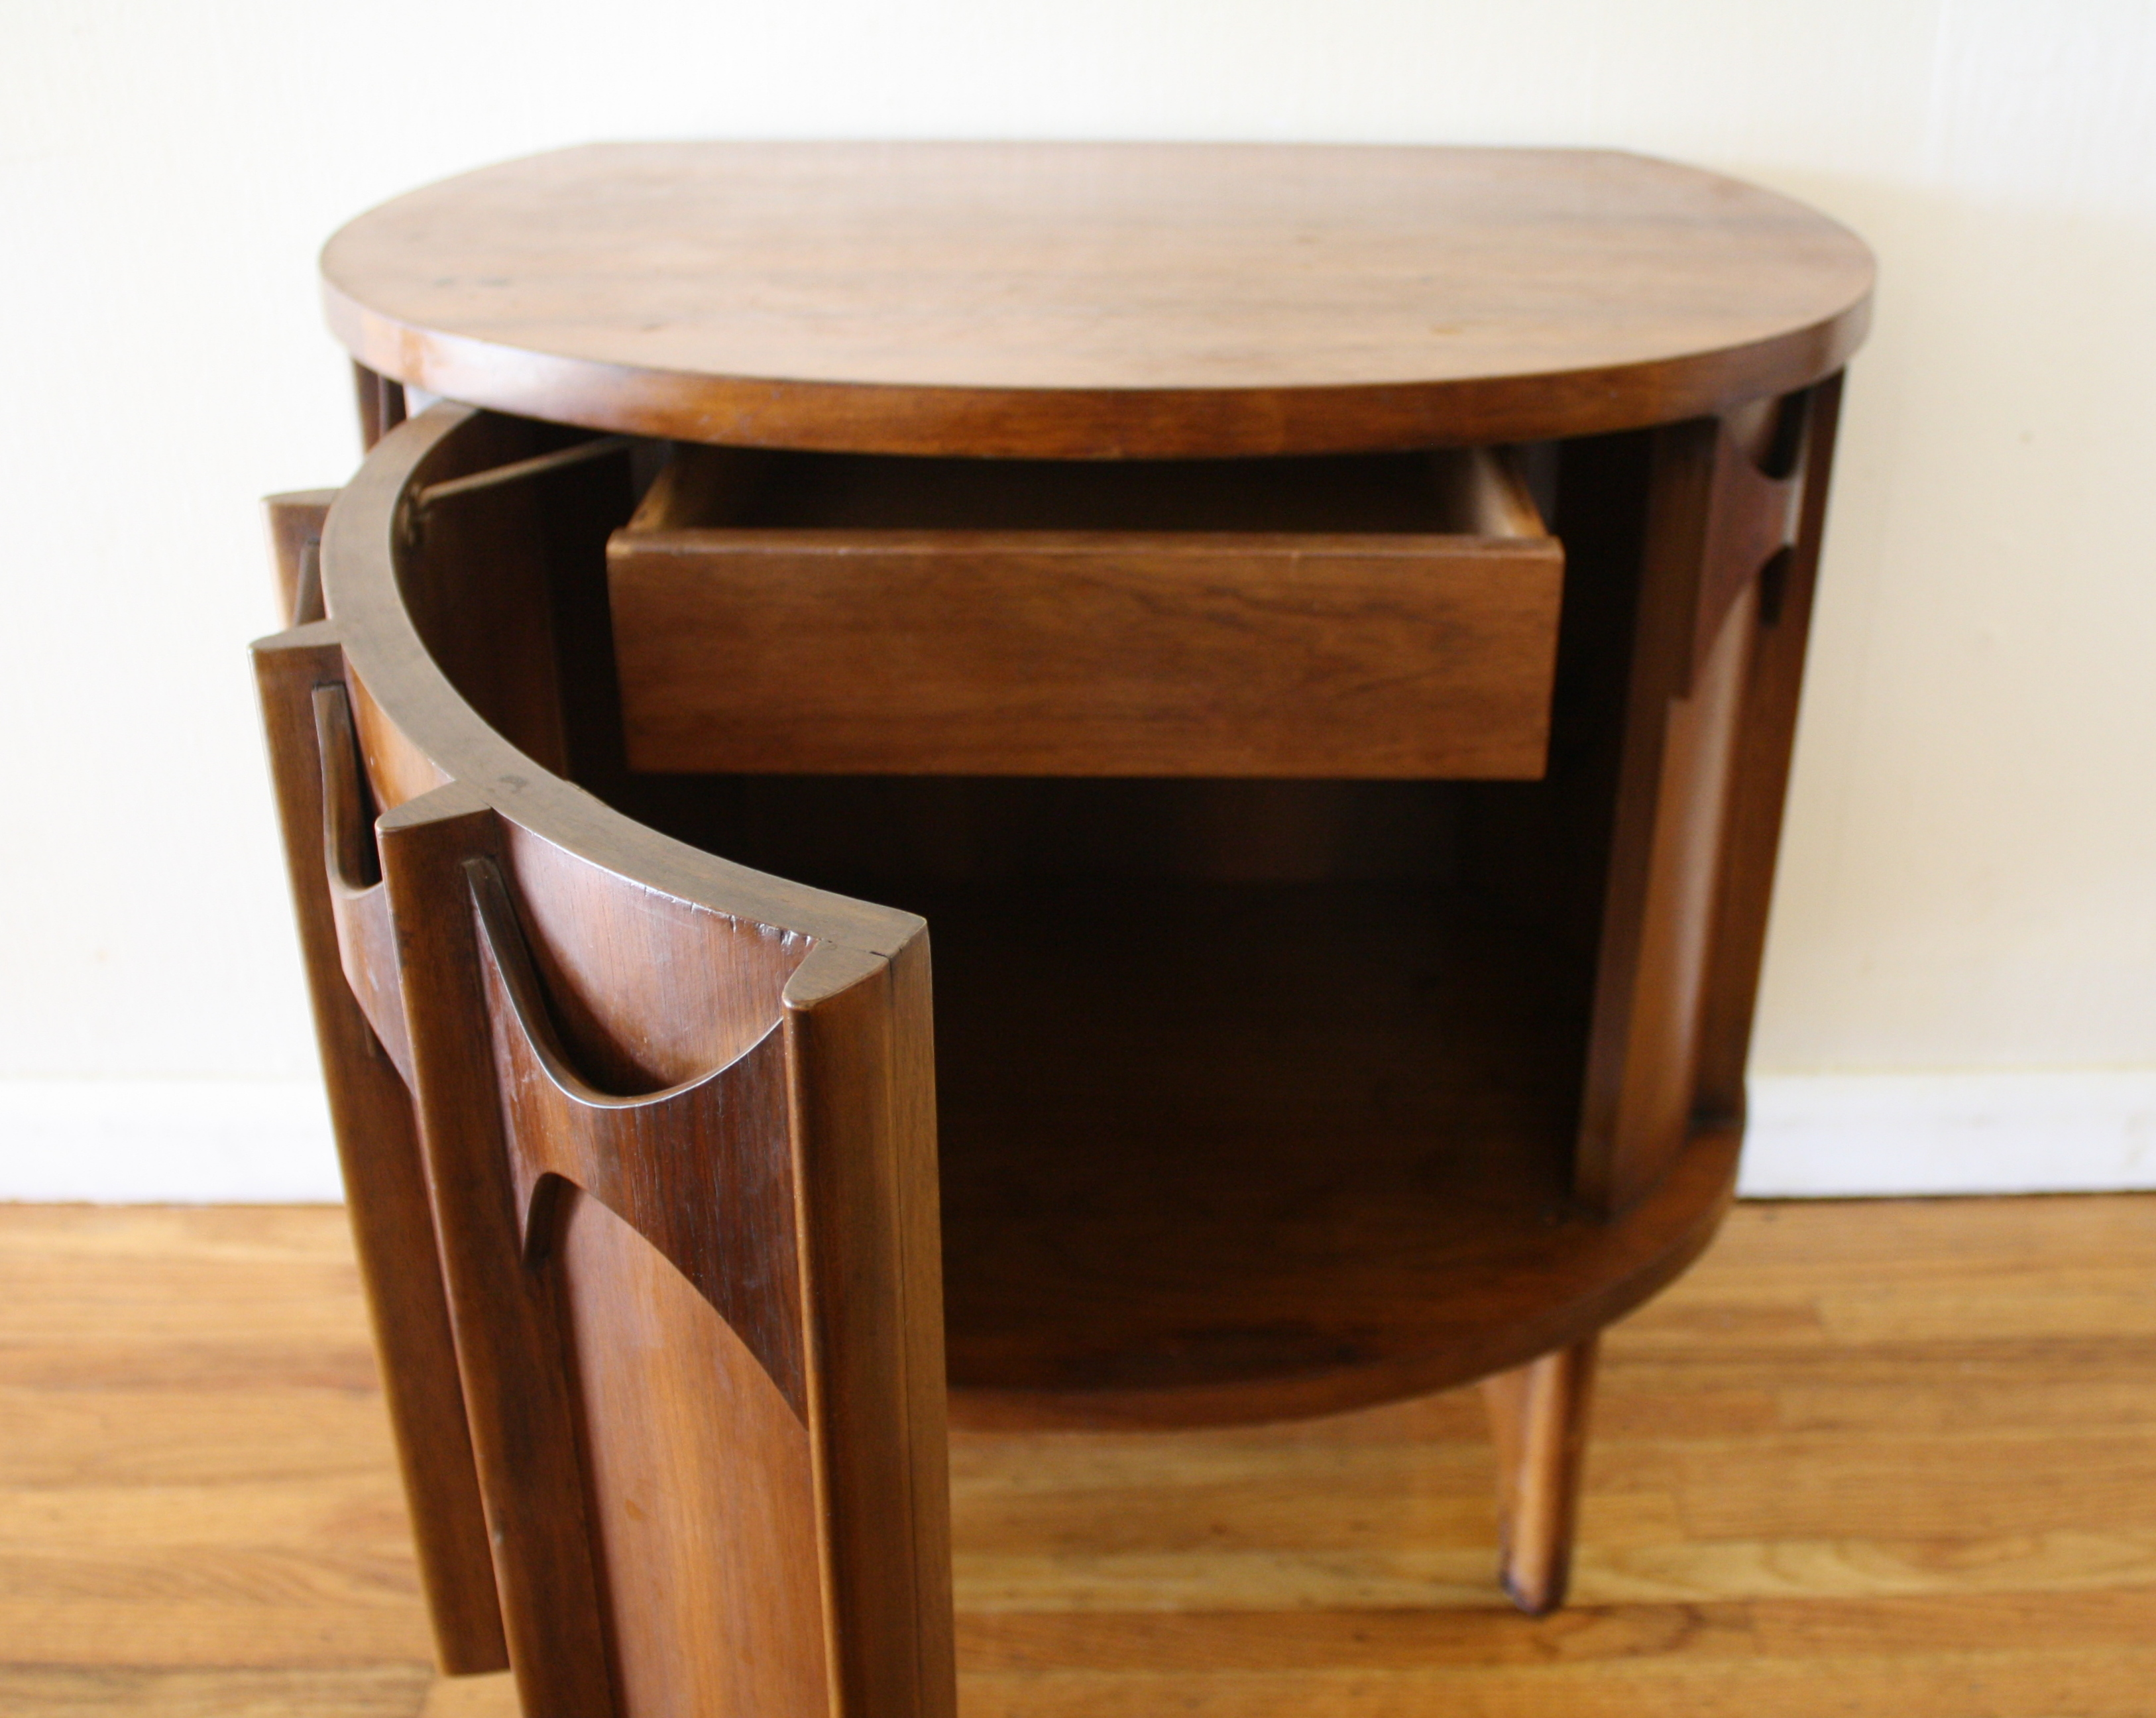 Kent Coffey Perspecta Demilune Table 3